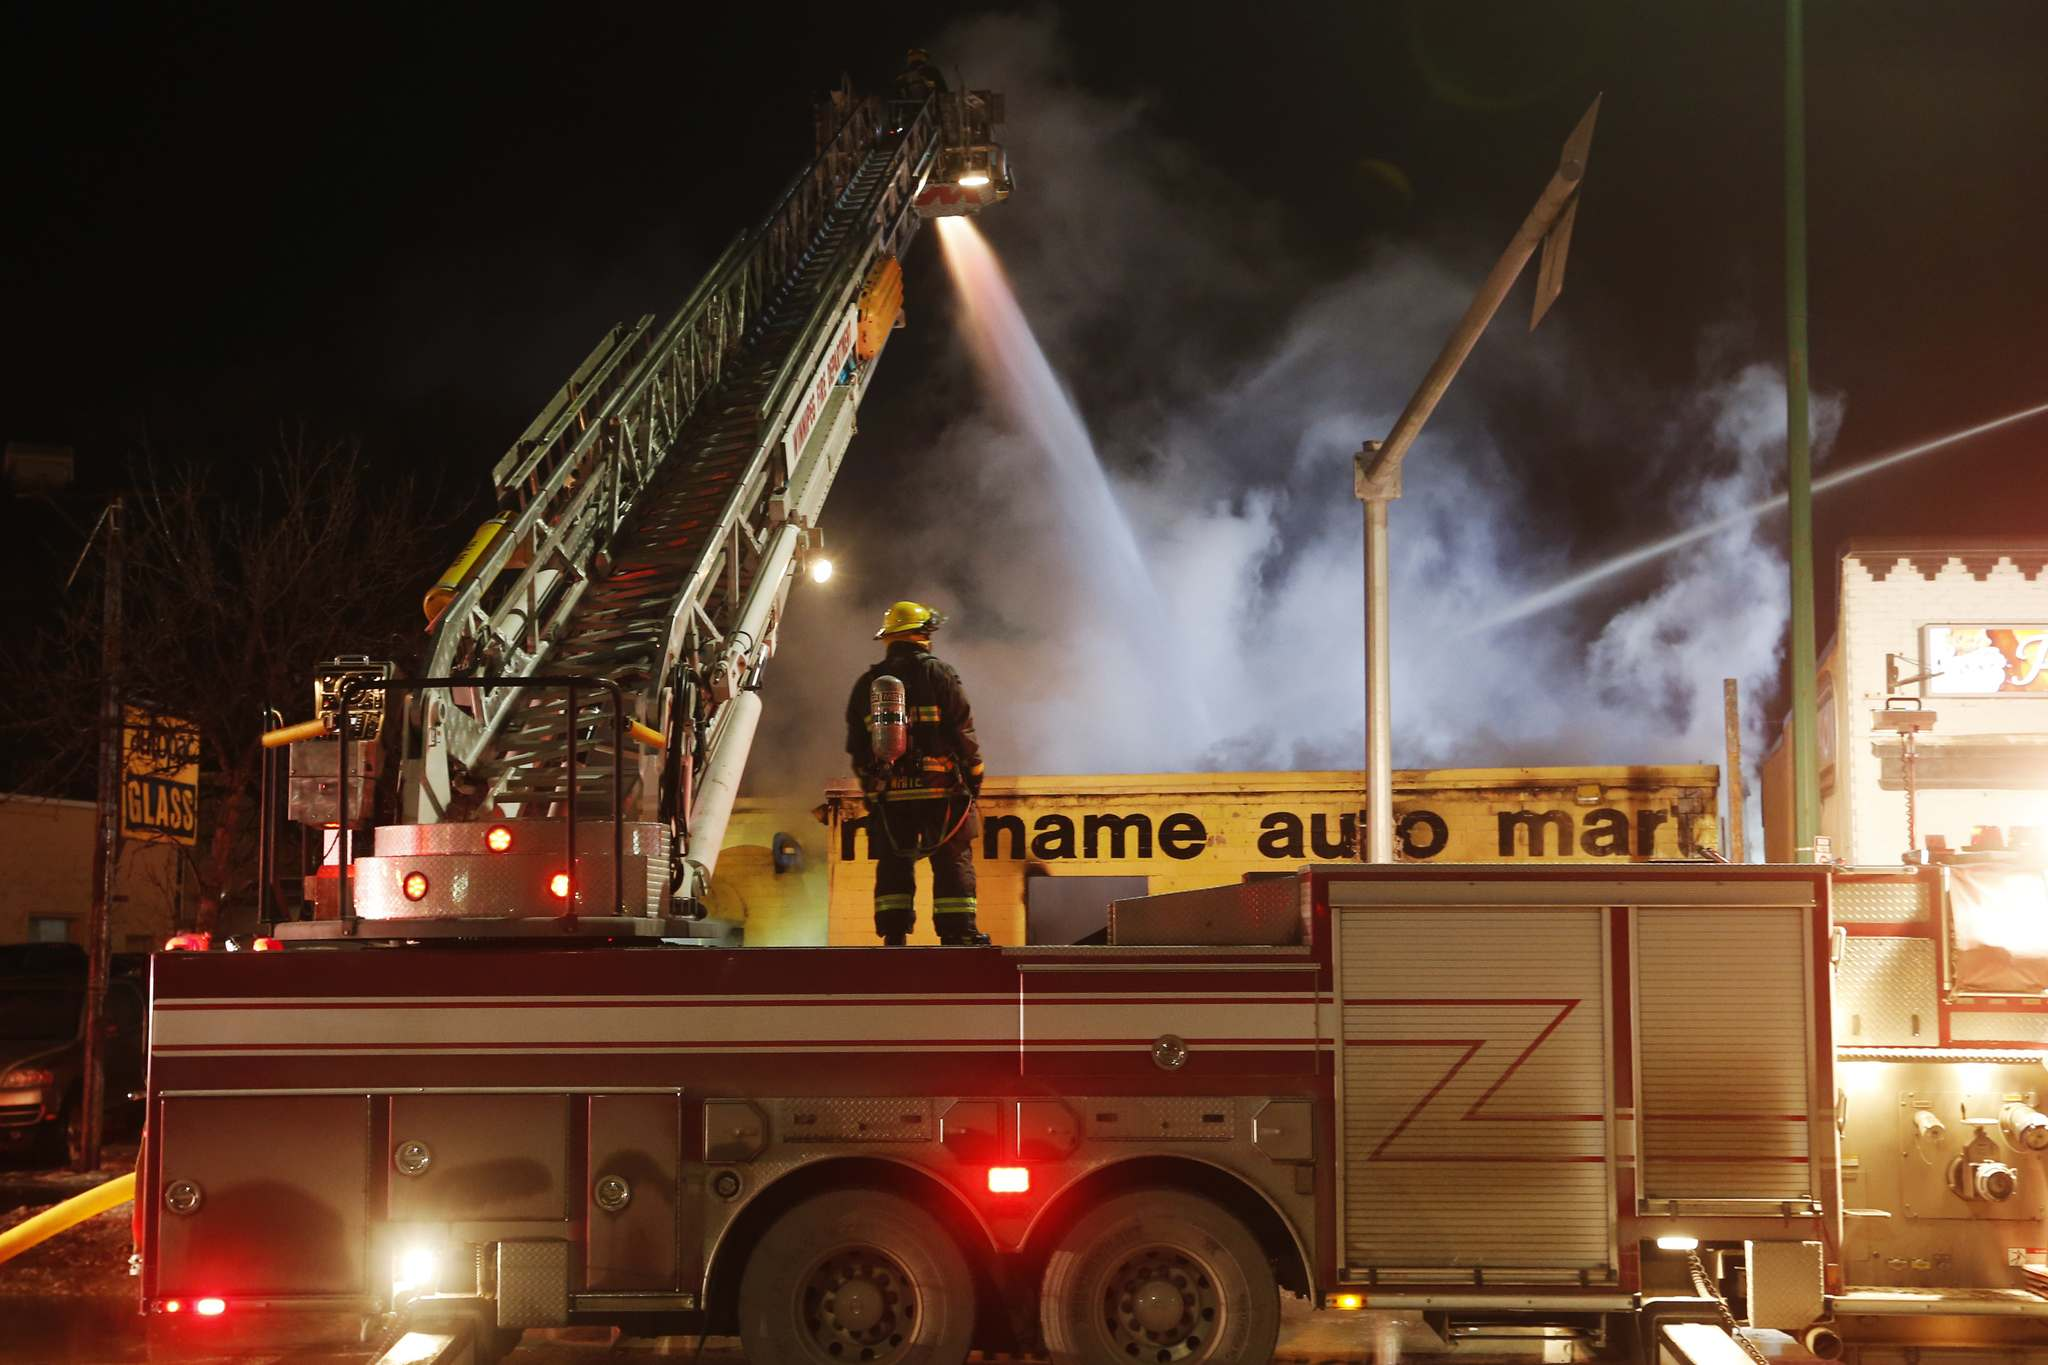 JOHN WOODS / WINNIPEG FREE PRESS</p><p>Firefighters work on a fire at a No Name Auto Mart at 951 Portage Ave. on Tuesday night.</p>